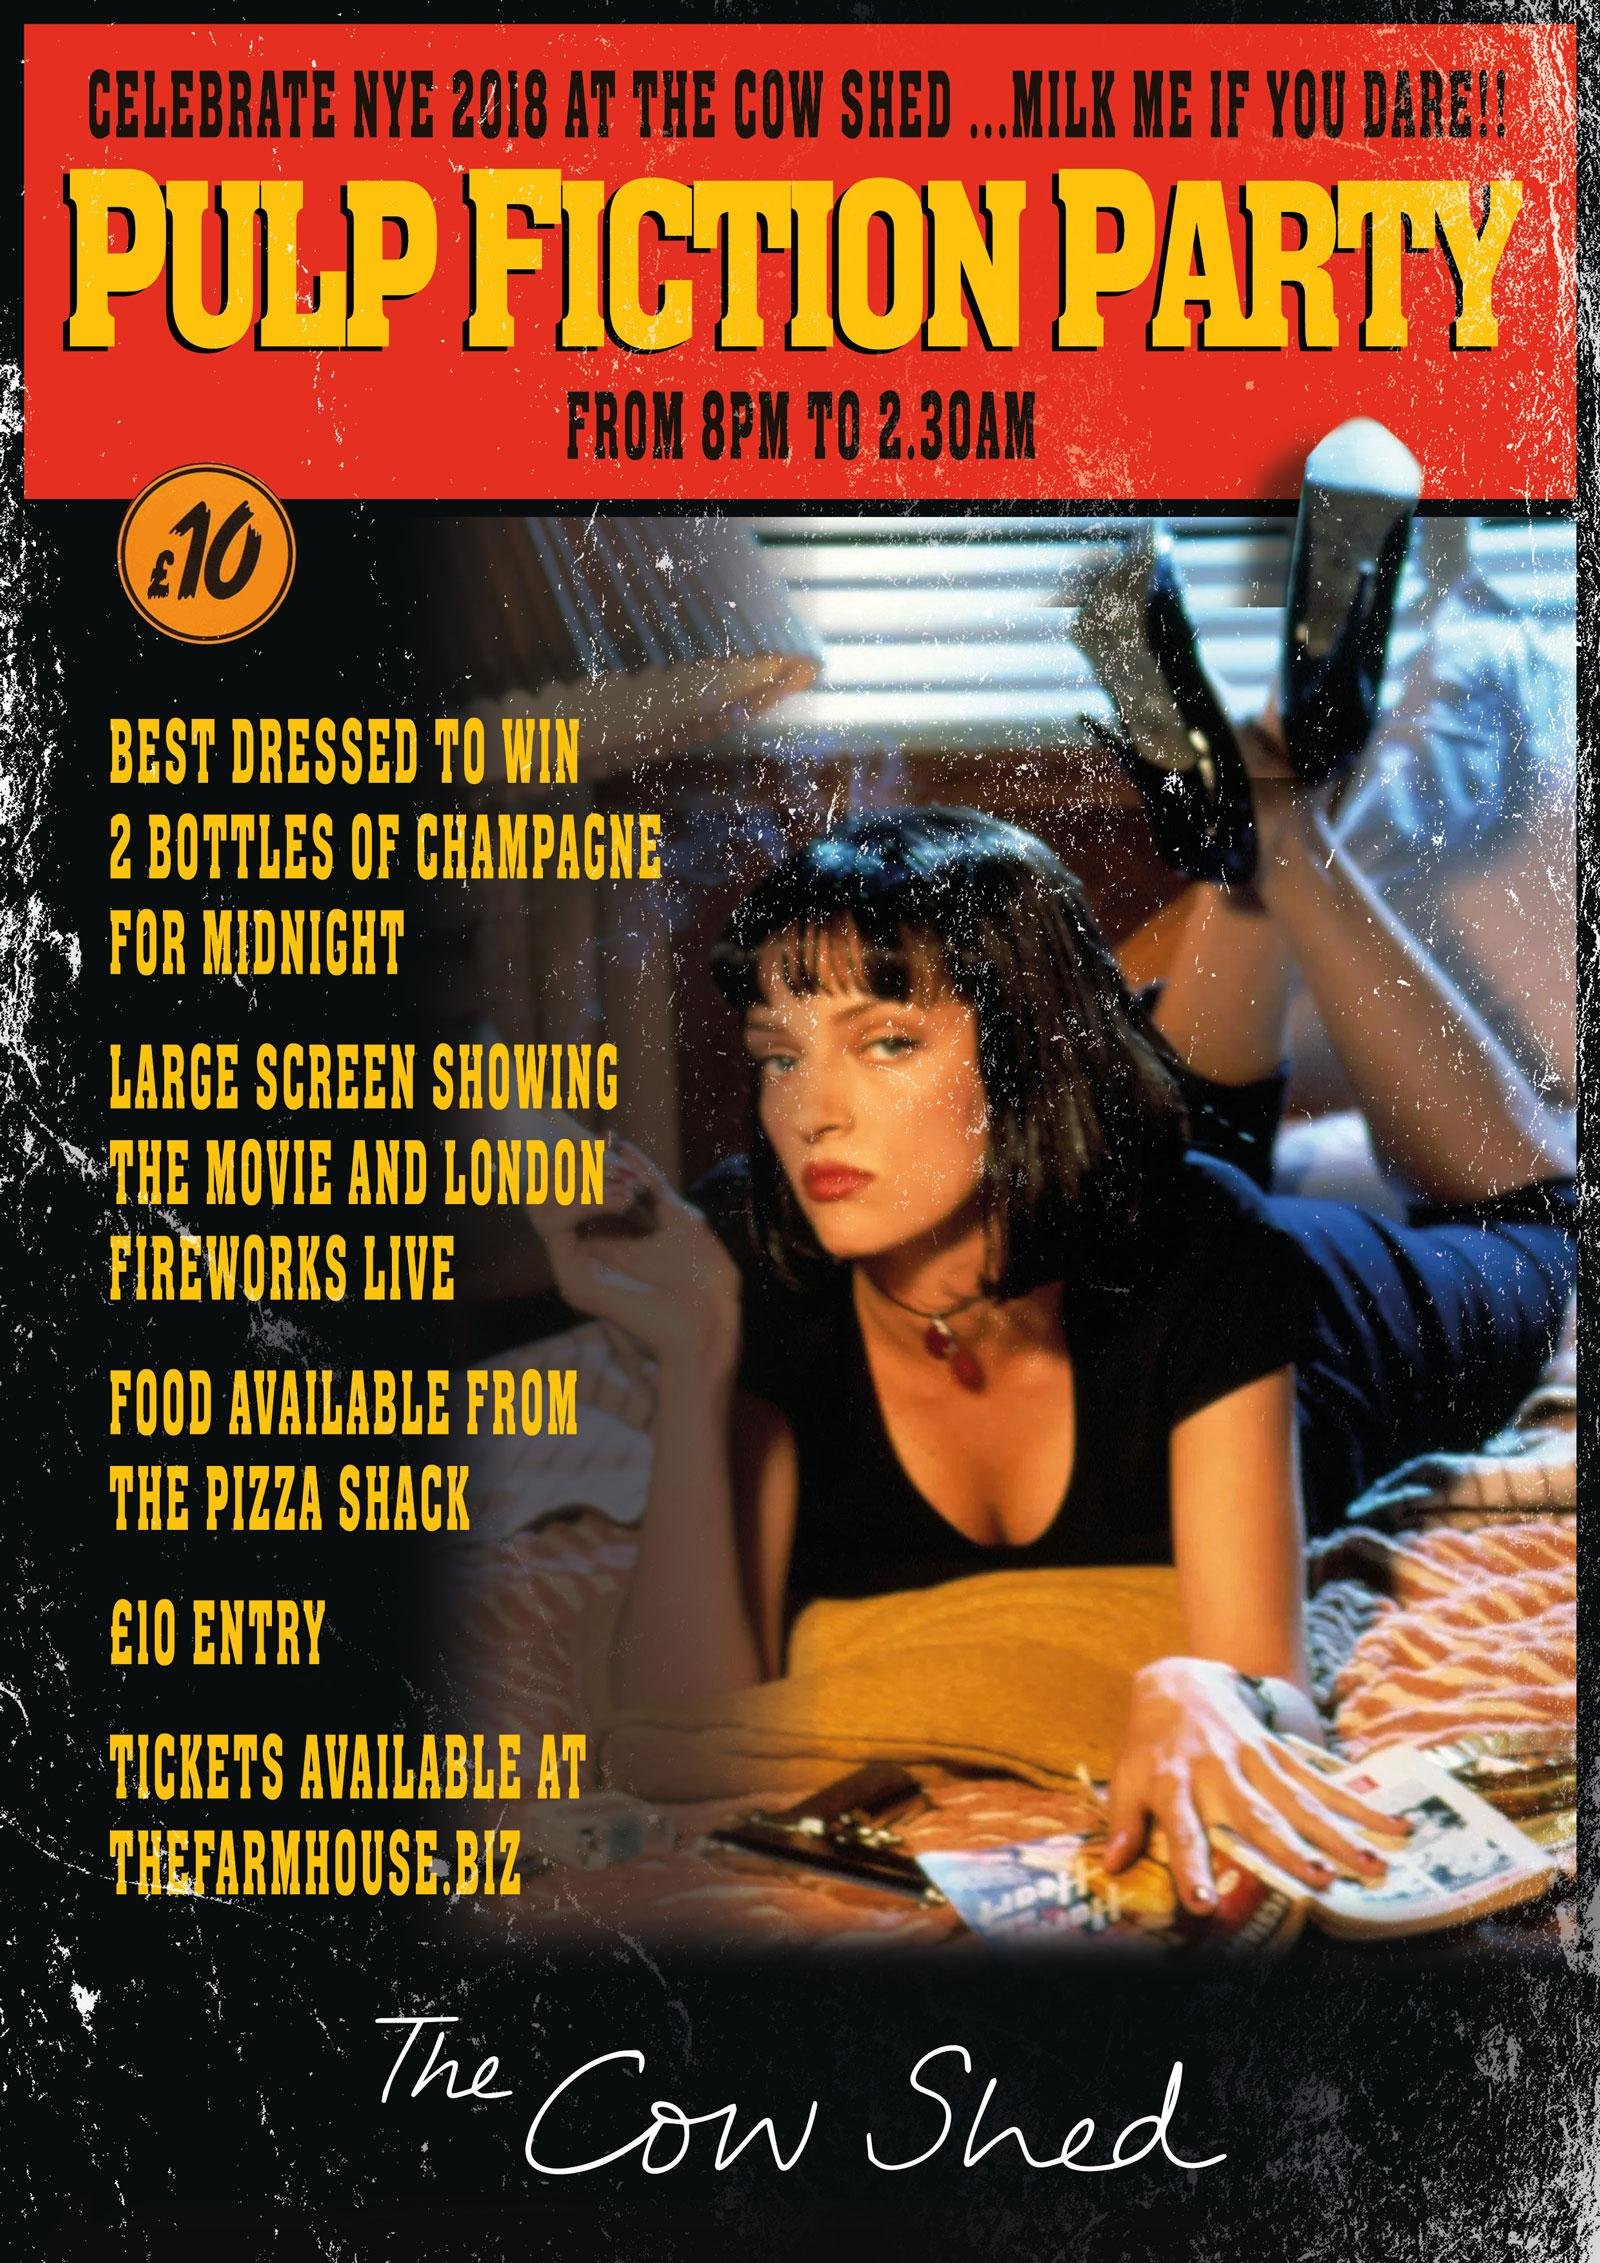 Pulp Fiction party at The Cow Shed